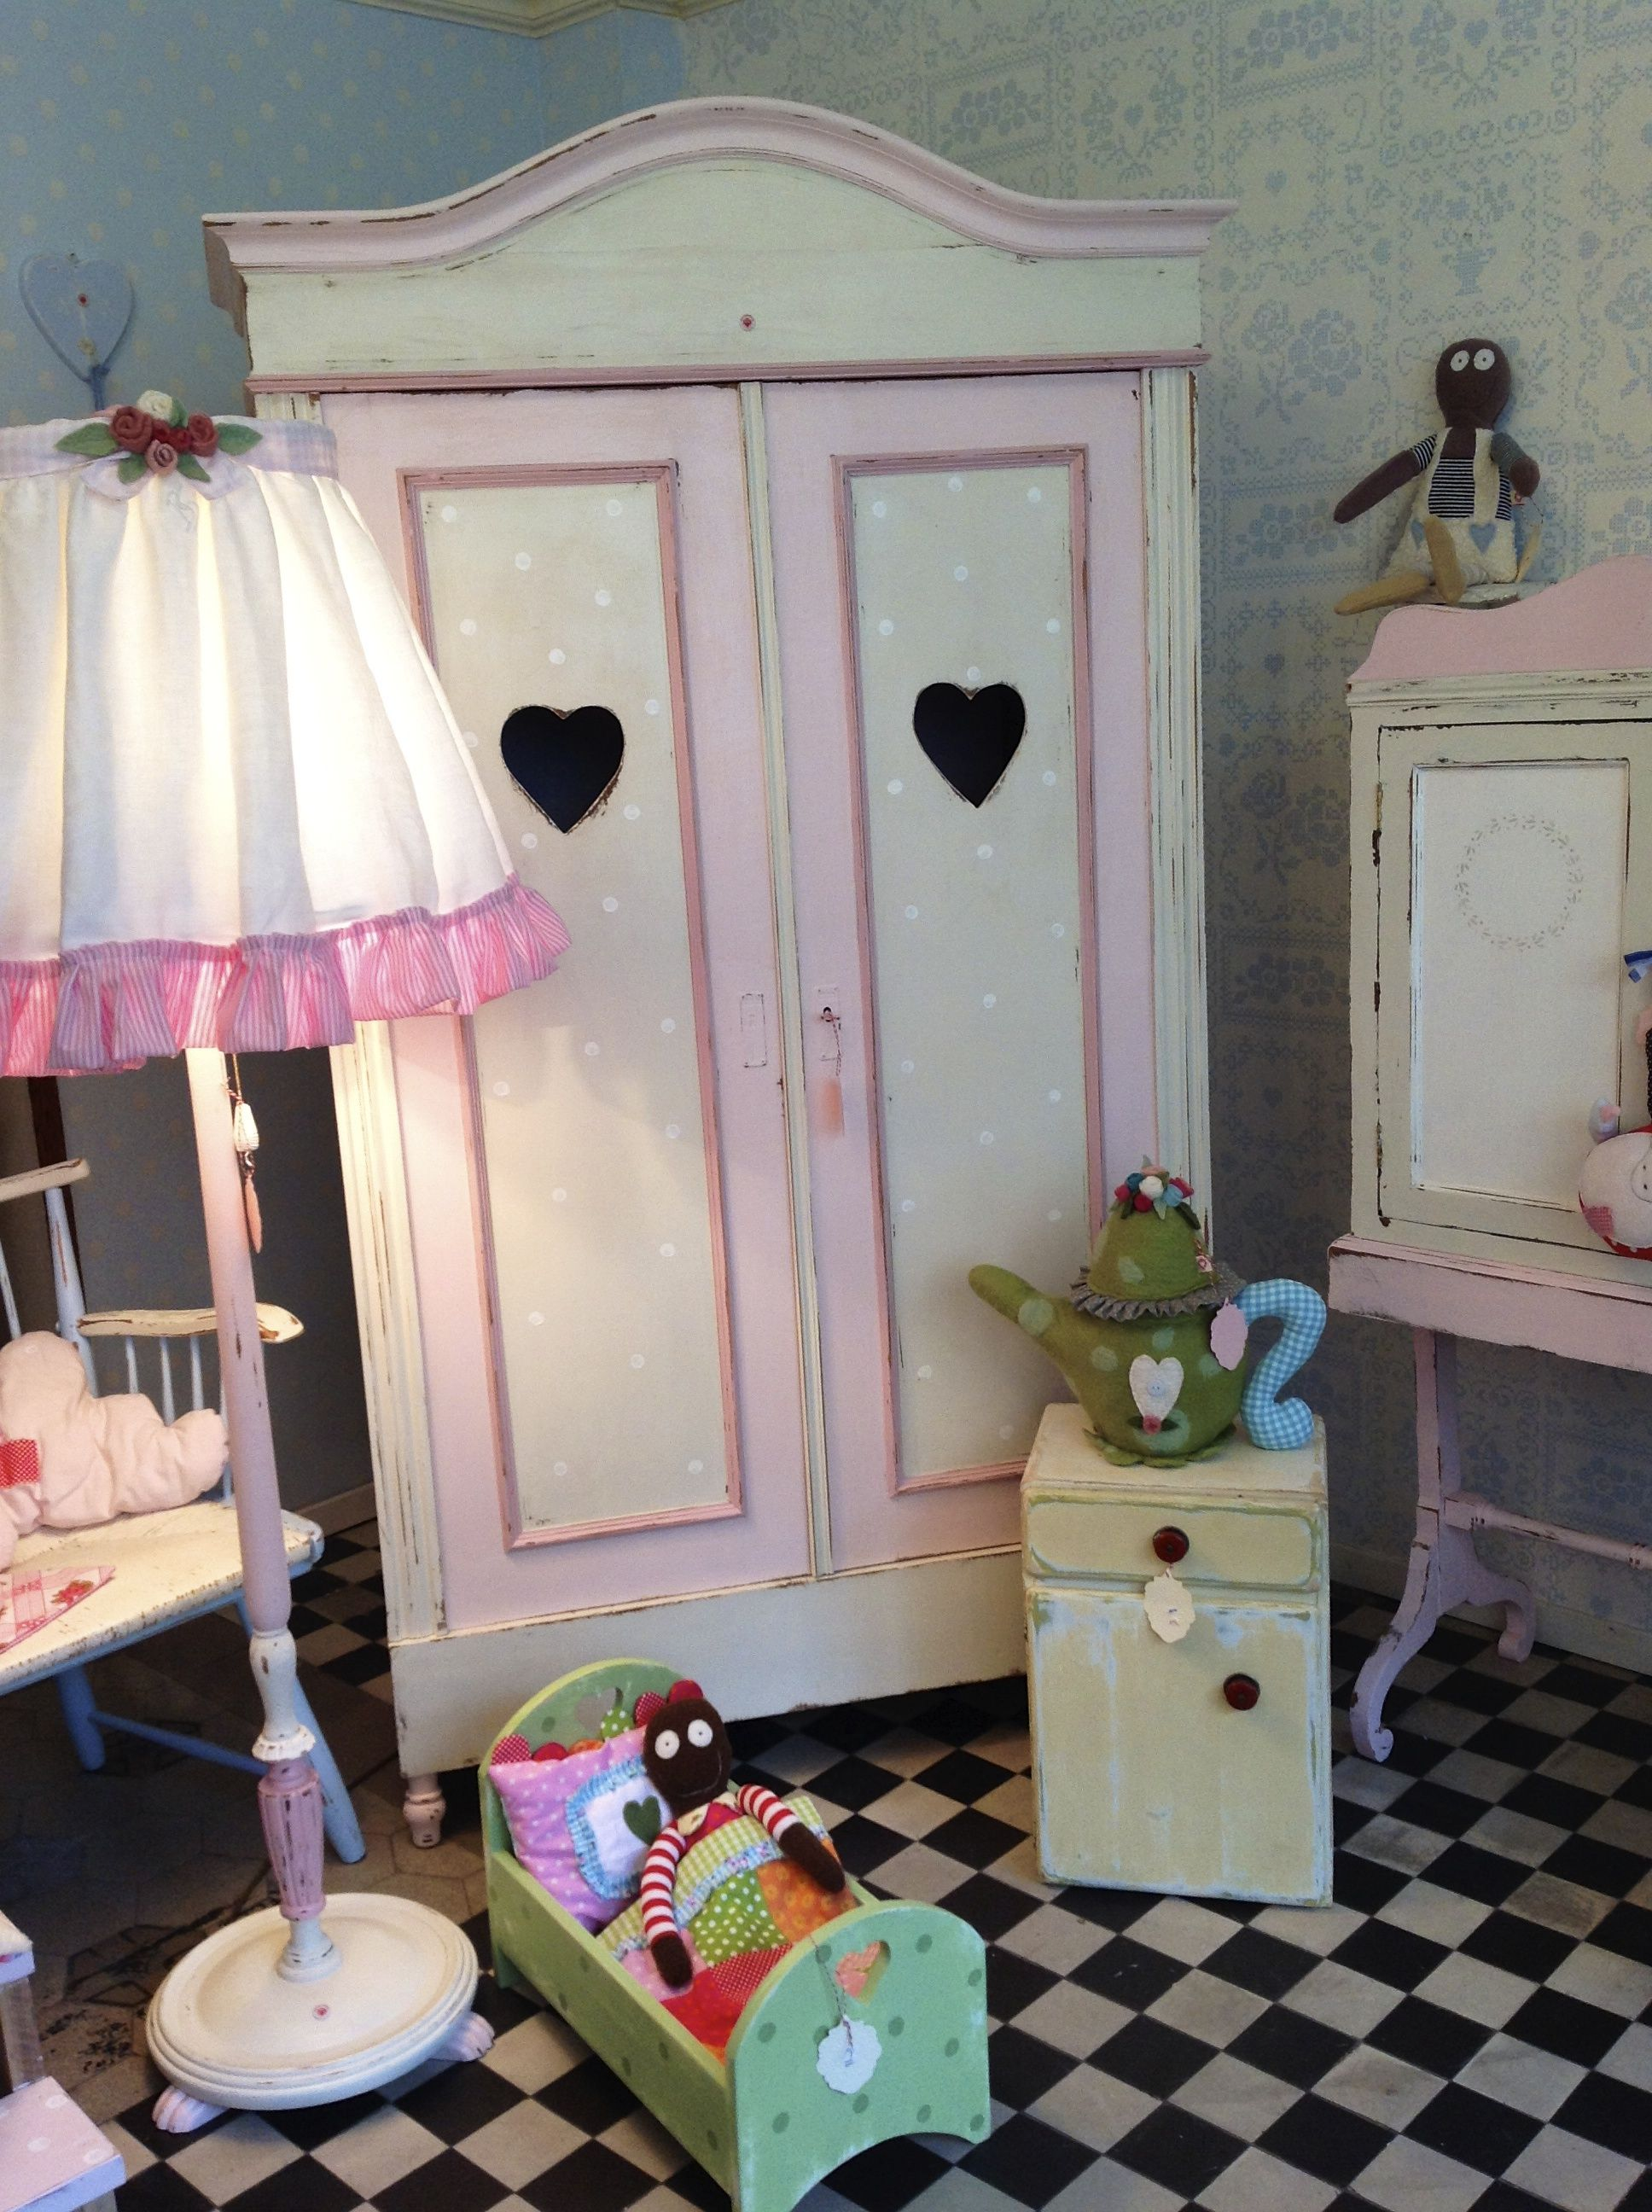 Vintage Kindermöbel | Home sweet Home by HerzensTREU | Pinterest ...